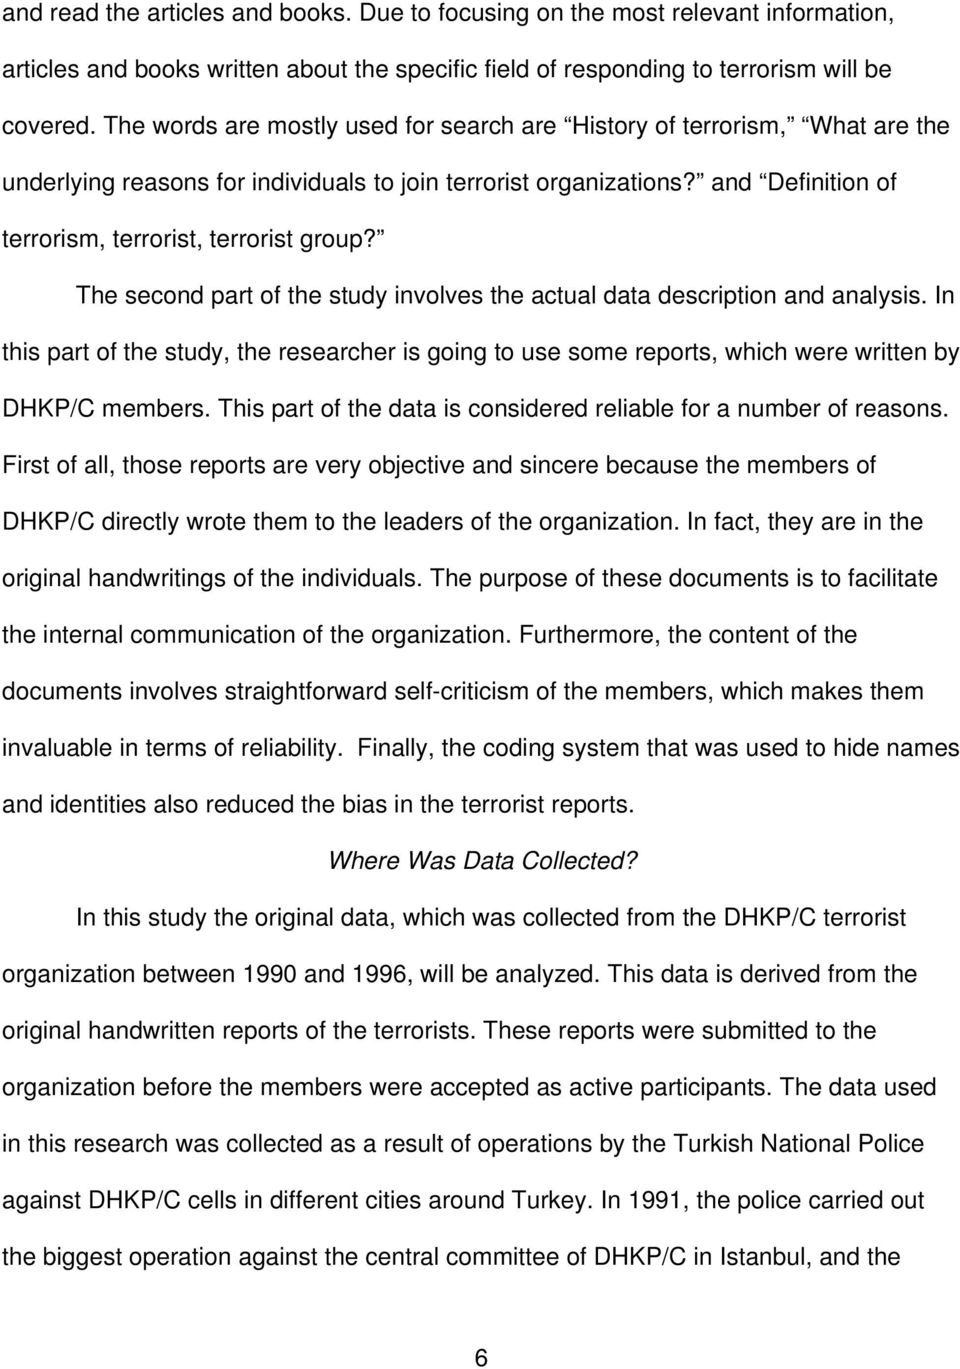 The second part of the study involves the actual data description and analysis. In this part of the study, the researcher is going to use some reports, which were written by DHKP/C members.